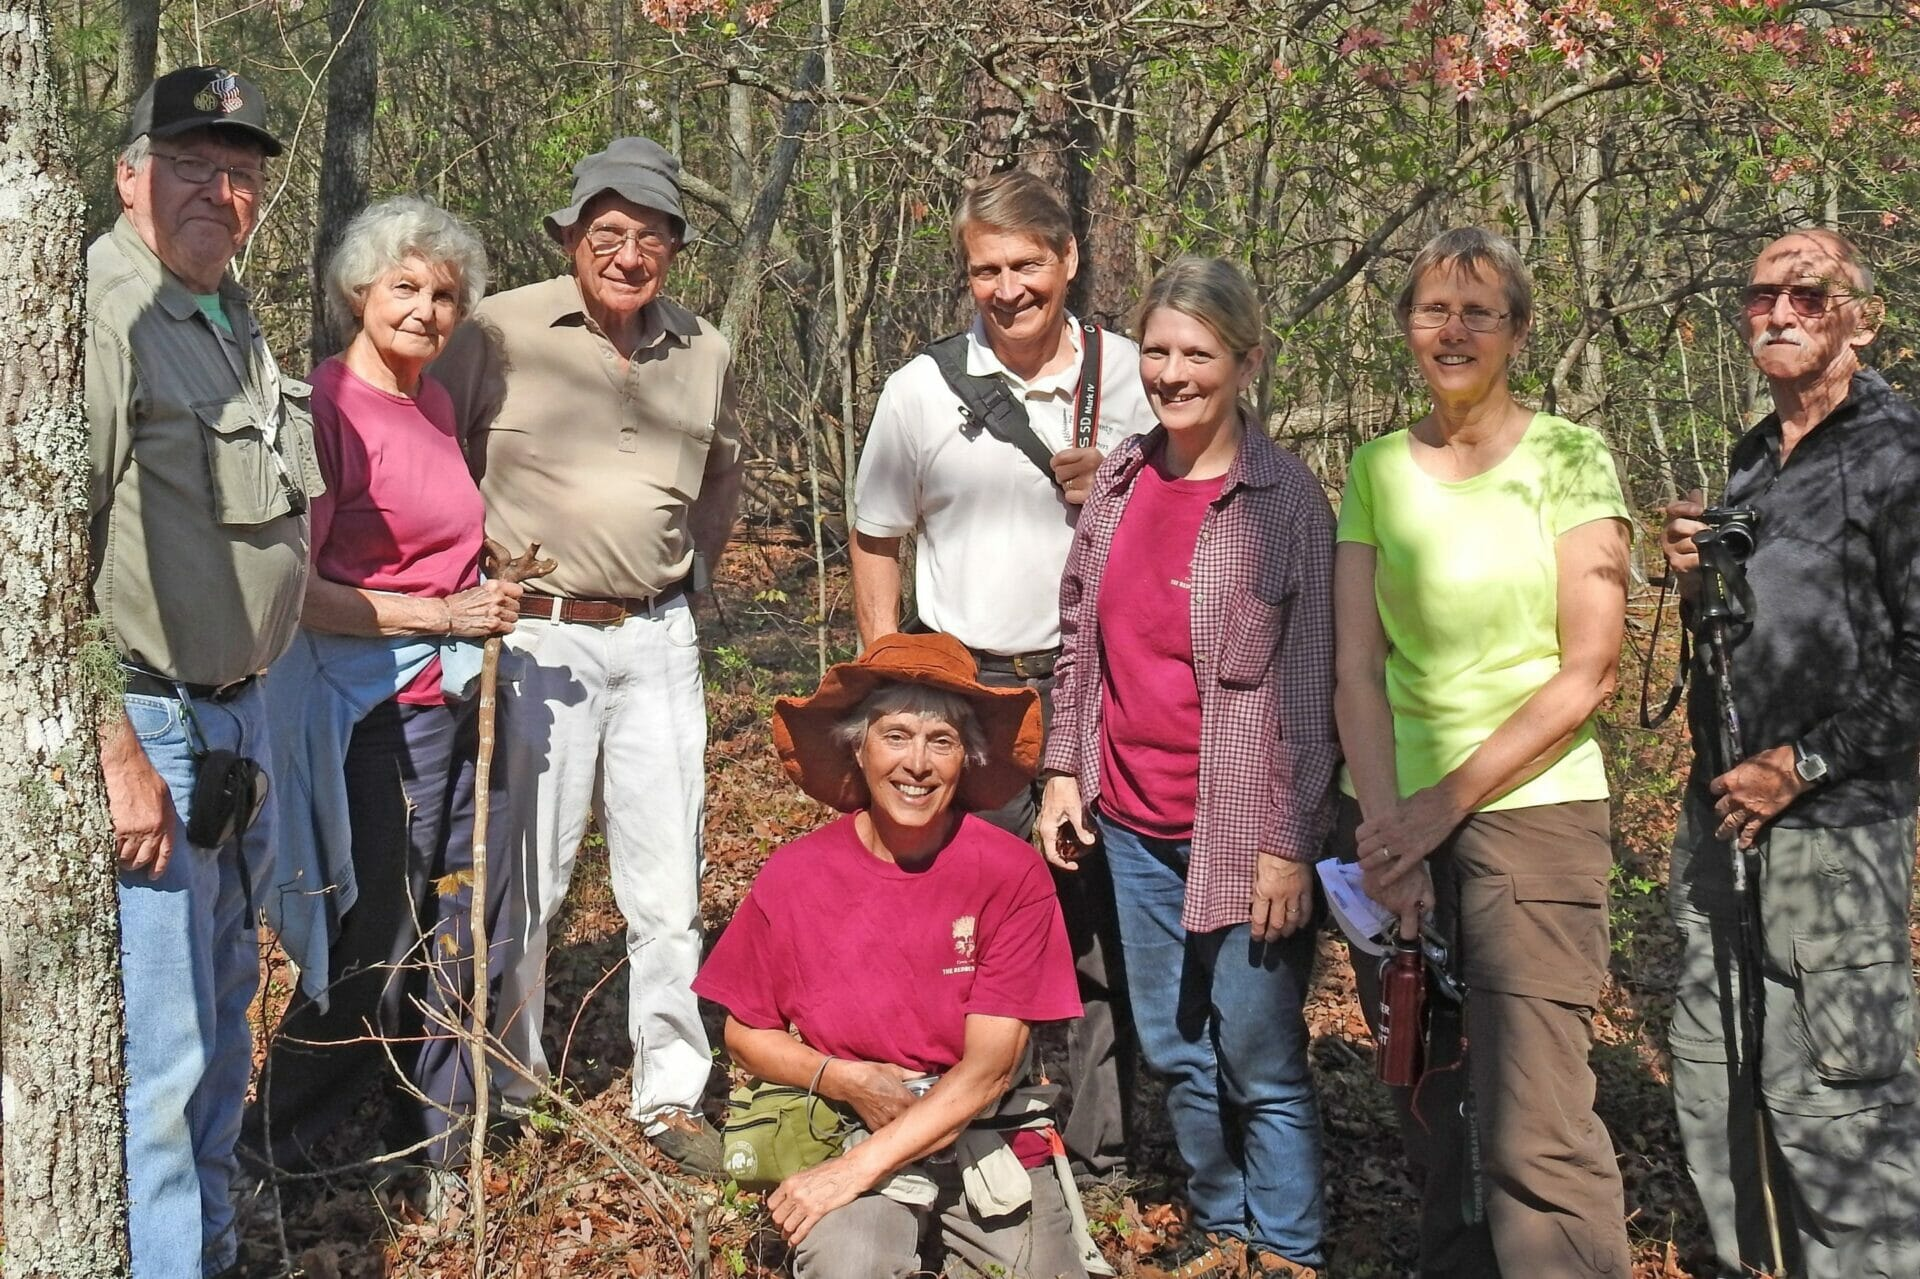 Charles Andrews on left with Attendies at Hurricane Creek Lumpkin Co Ga